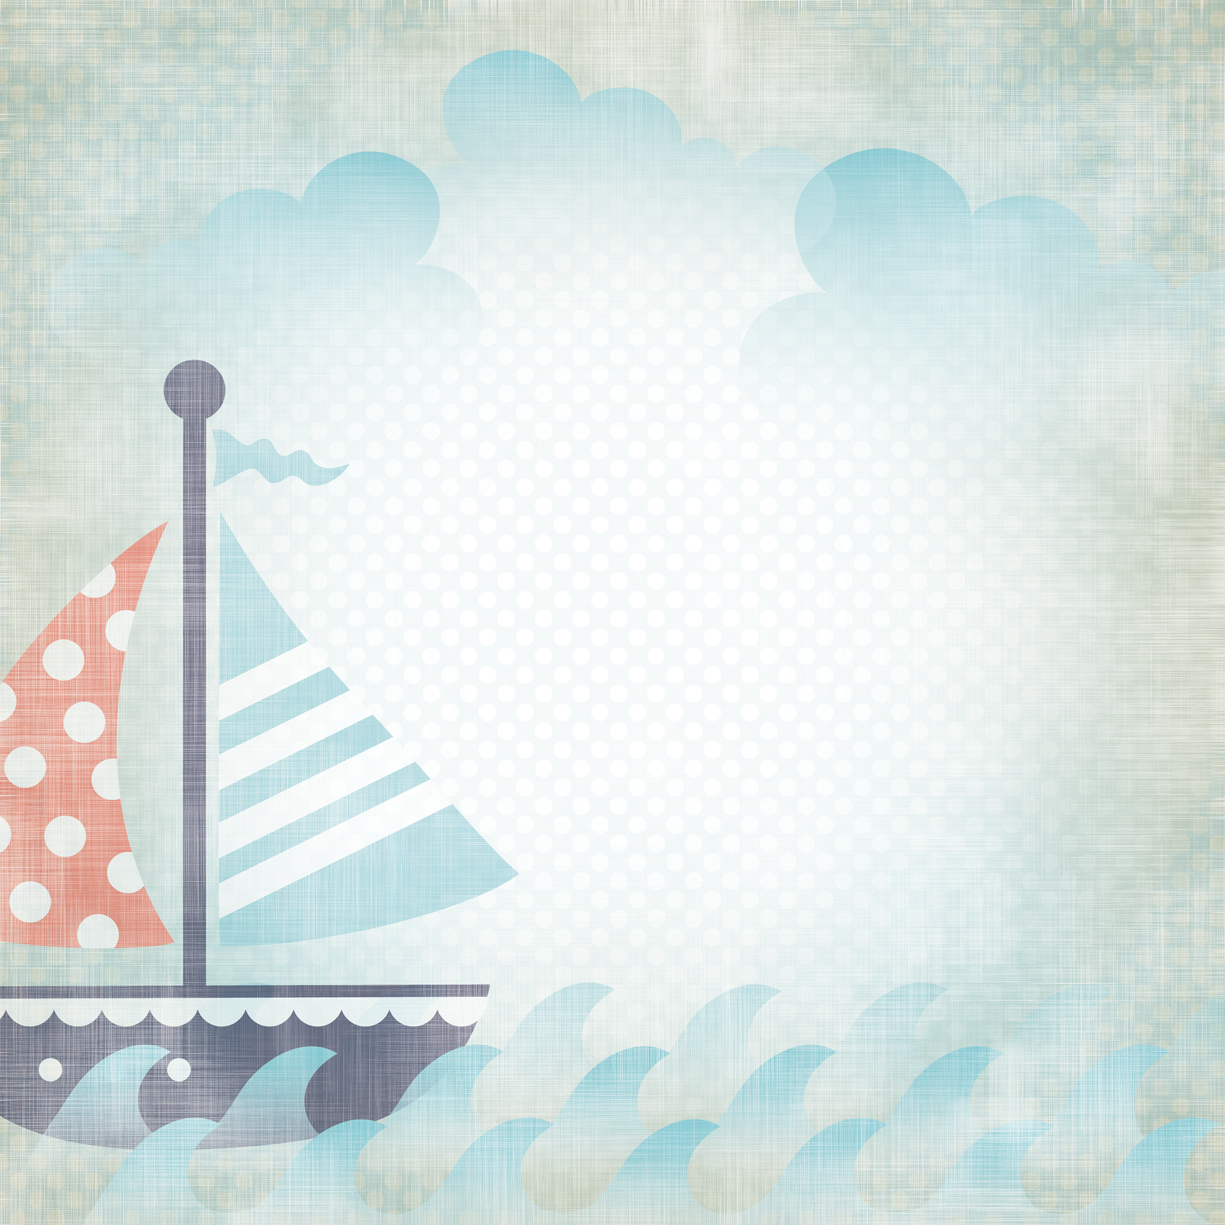 Nautical Wallpapers - WallpaperSafari